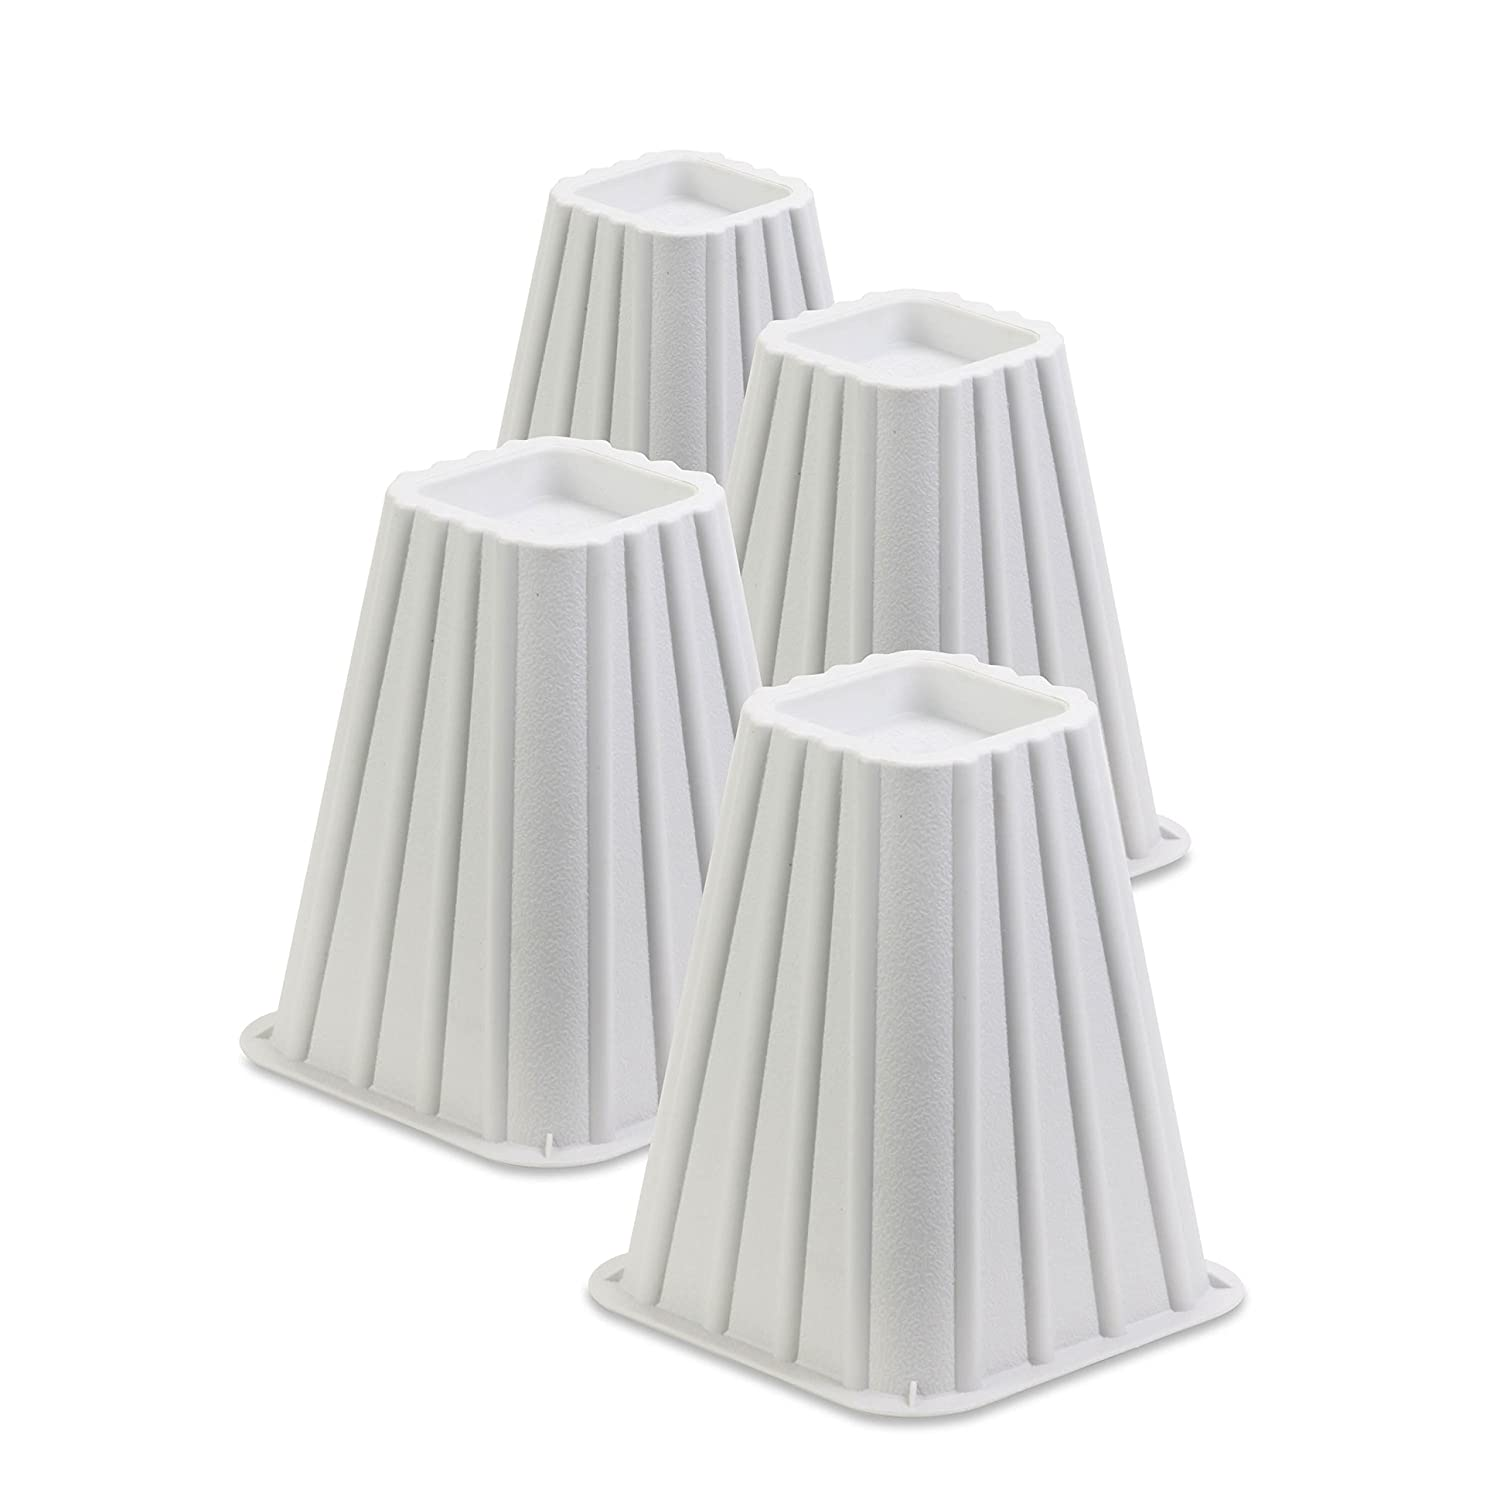 Honey-Can-Do STO-01006 Stackable Bed Risers, 4-Pack, White Honey-Can-Do International